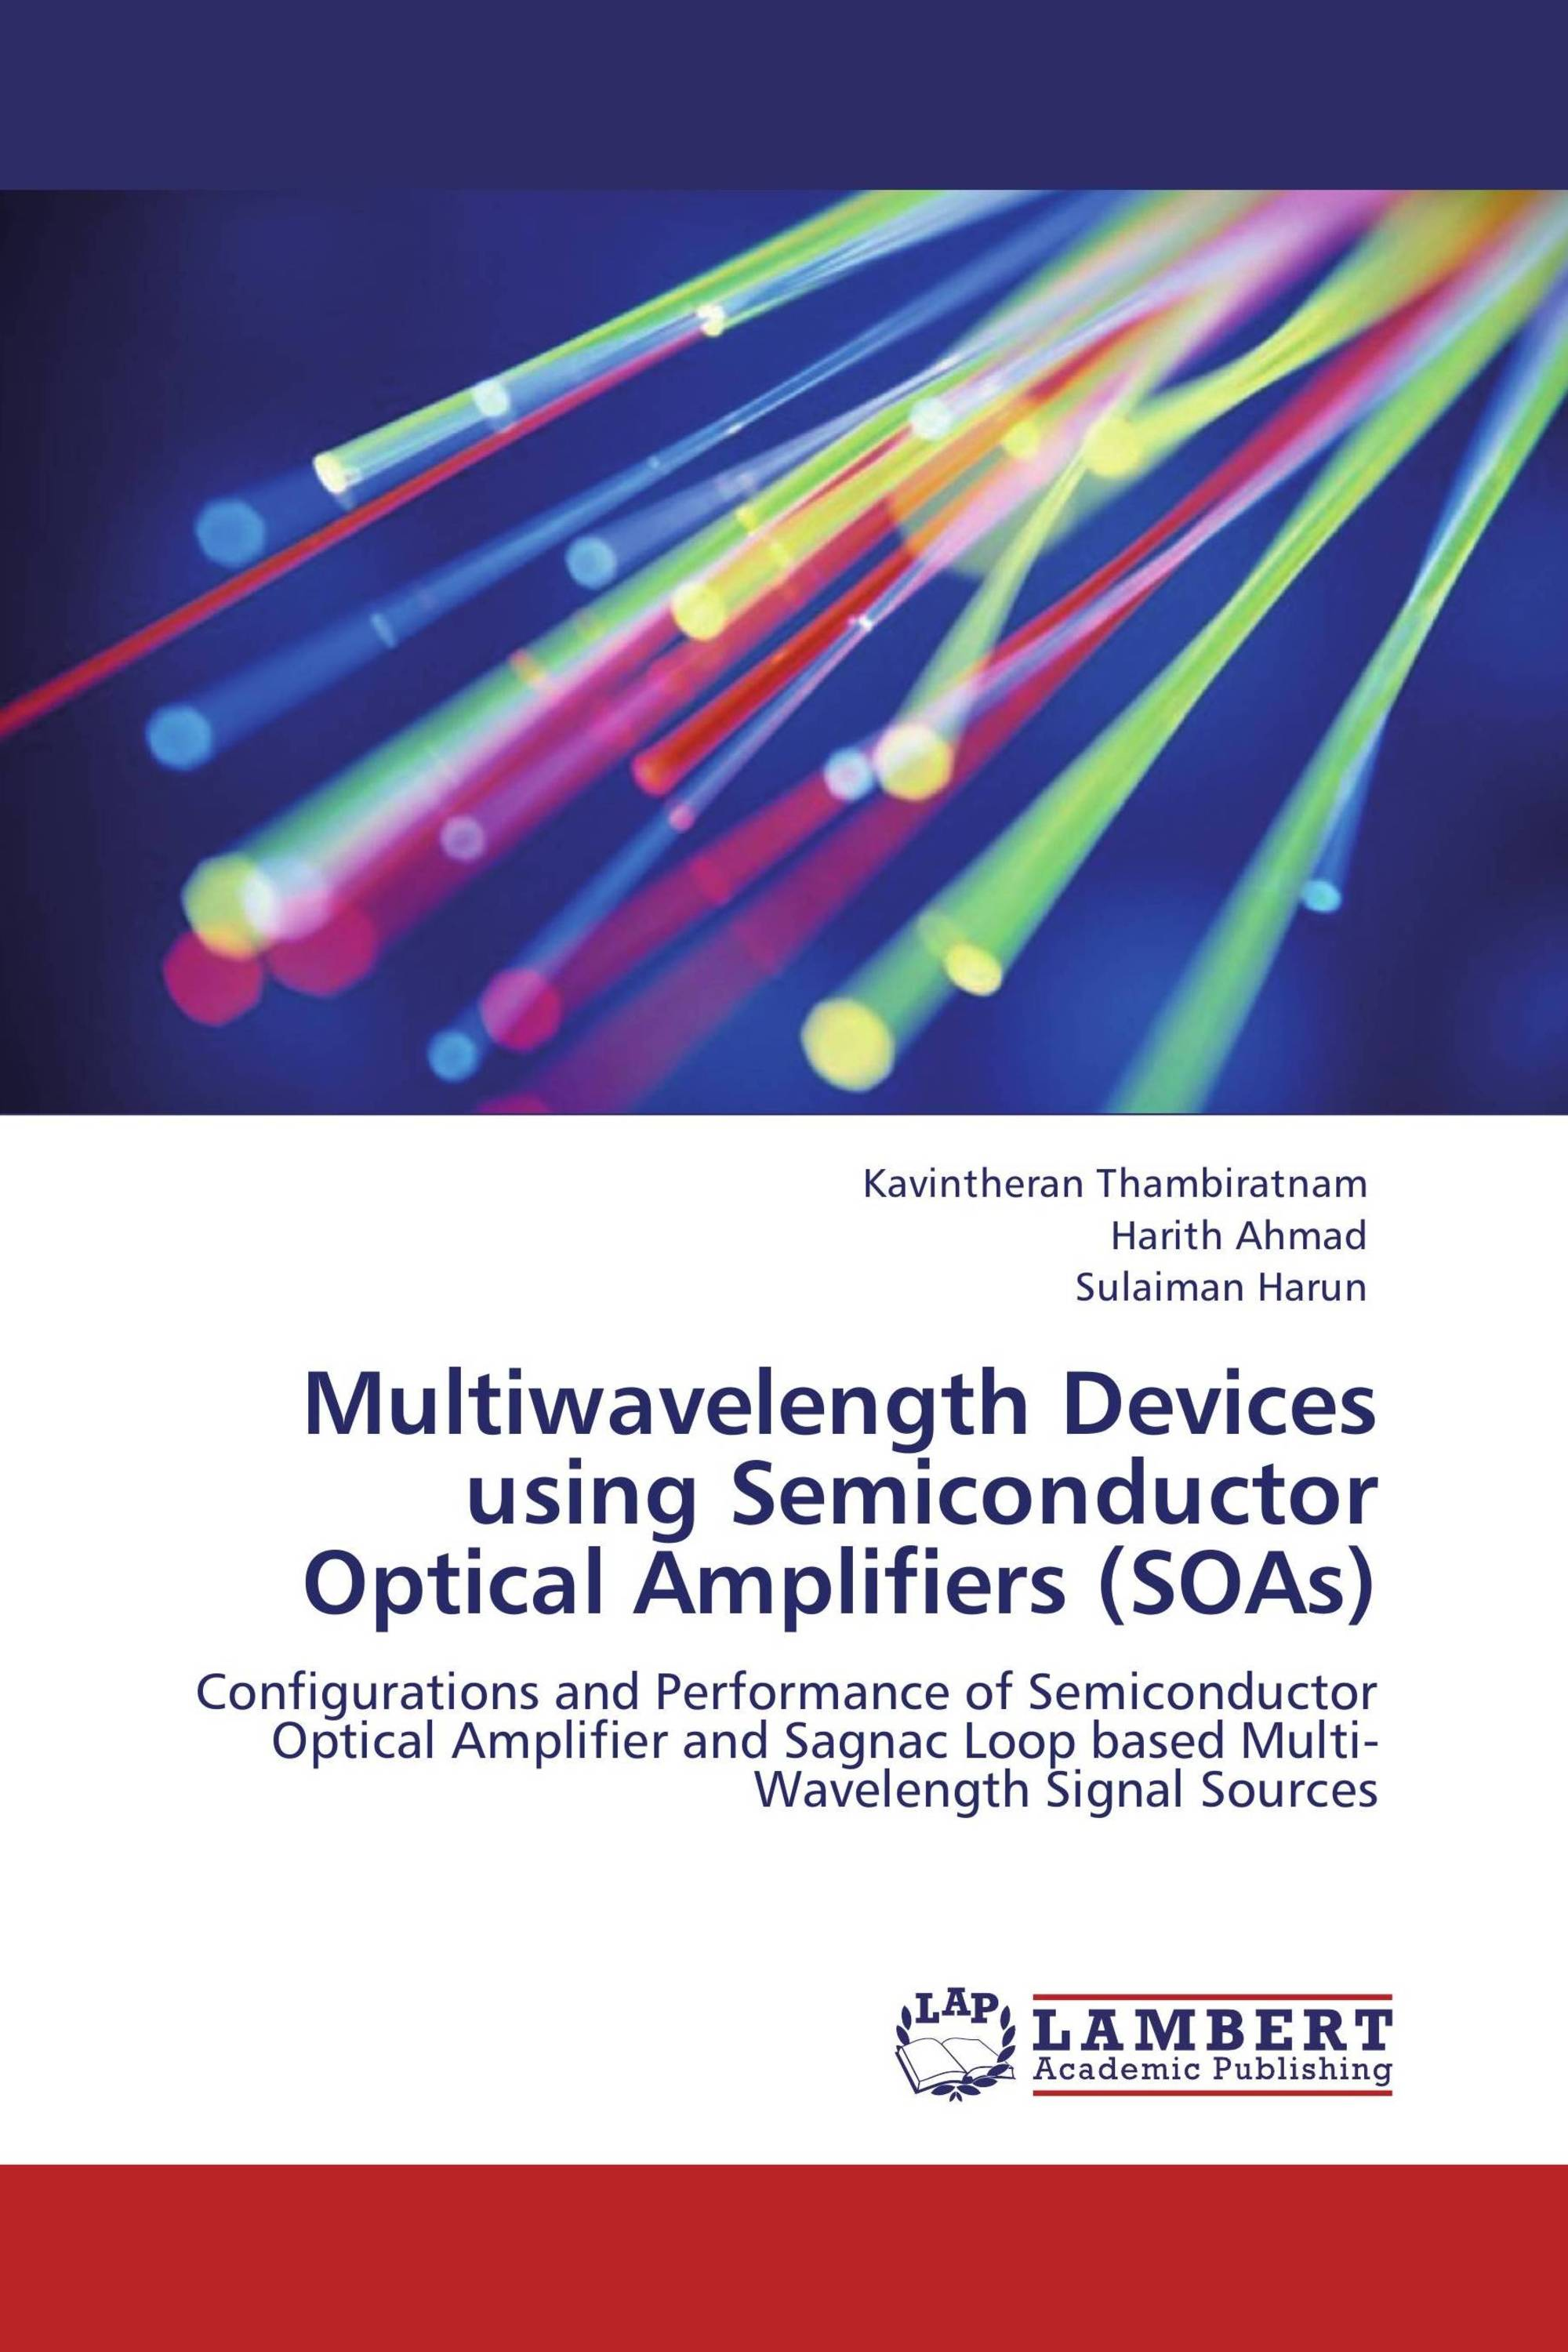 Multiwavelength Devices using Semiconductor Optical Amplifiers (SOAs)